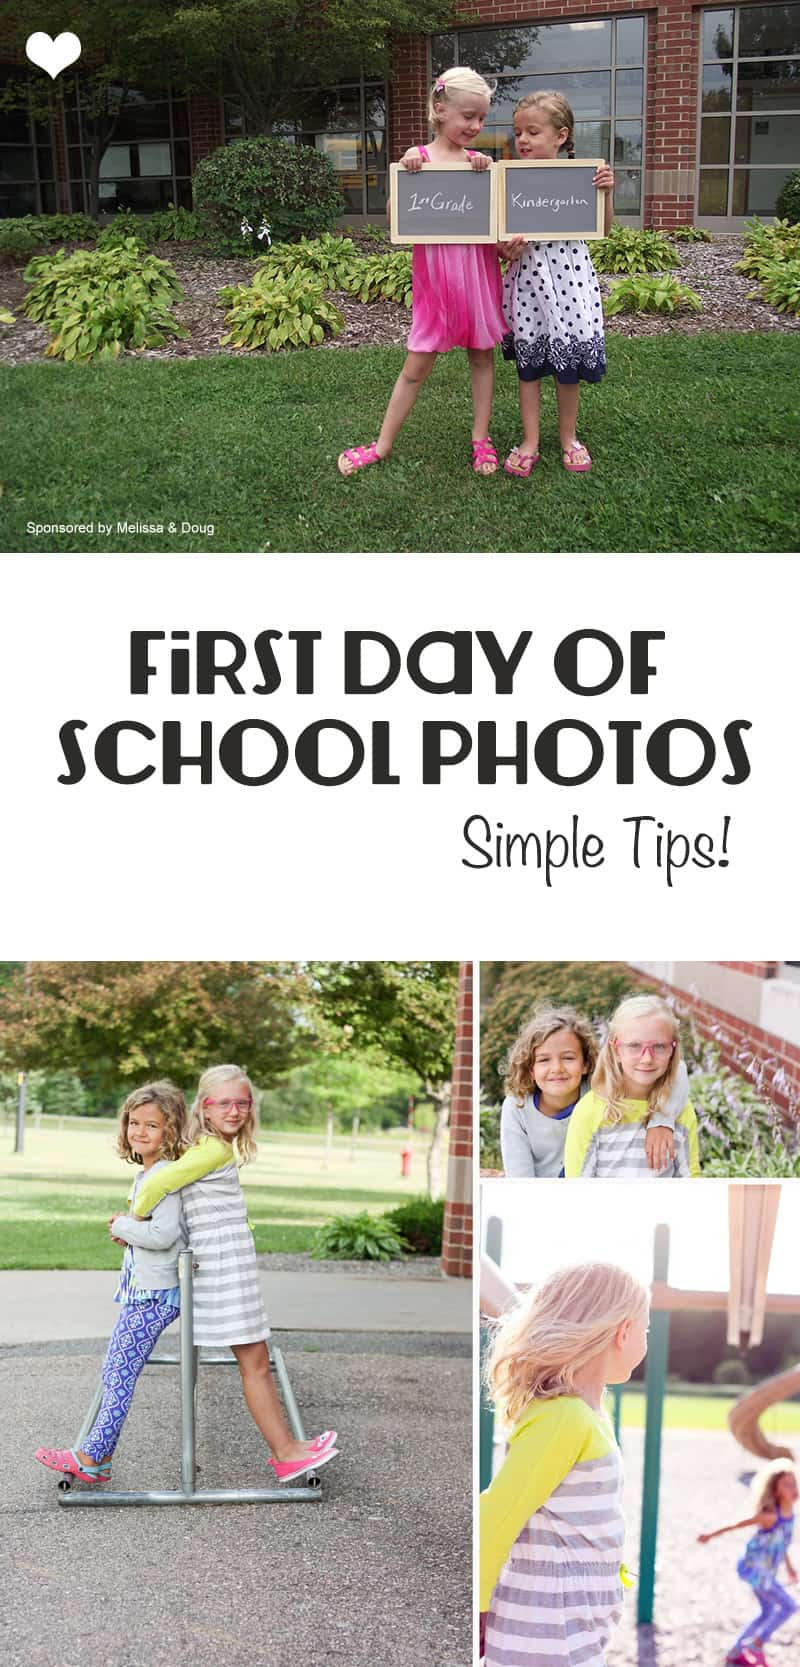 First Day of School Photos // Great tips on ensuring you get a great photos!